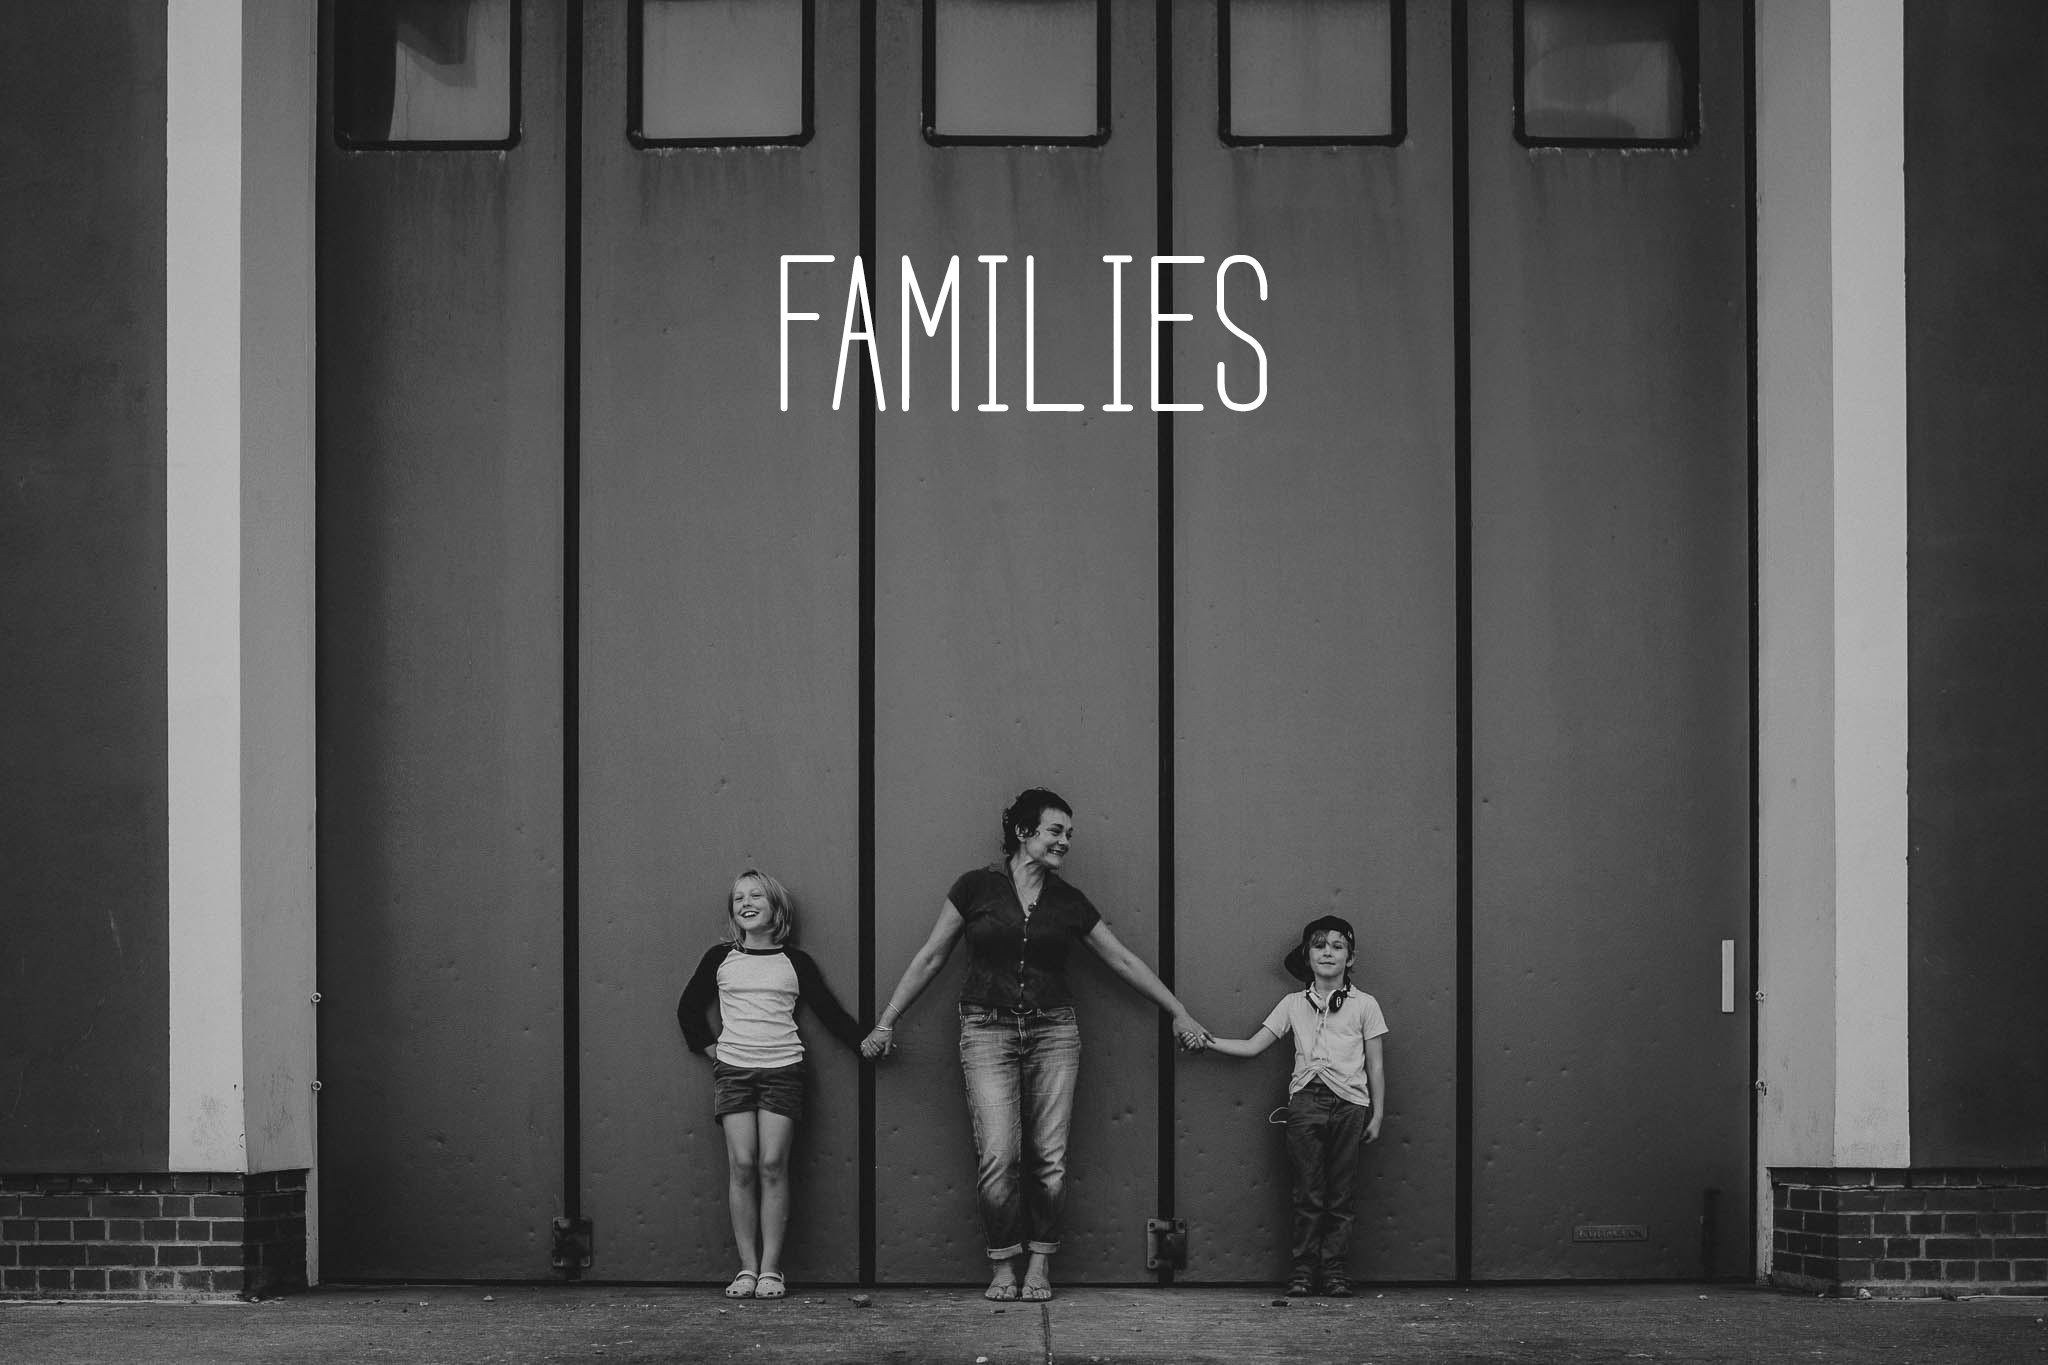 FAMILIES!